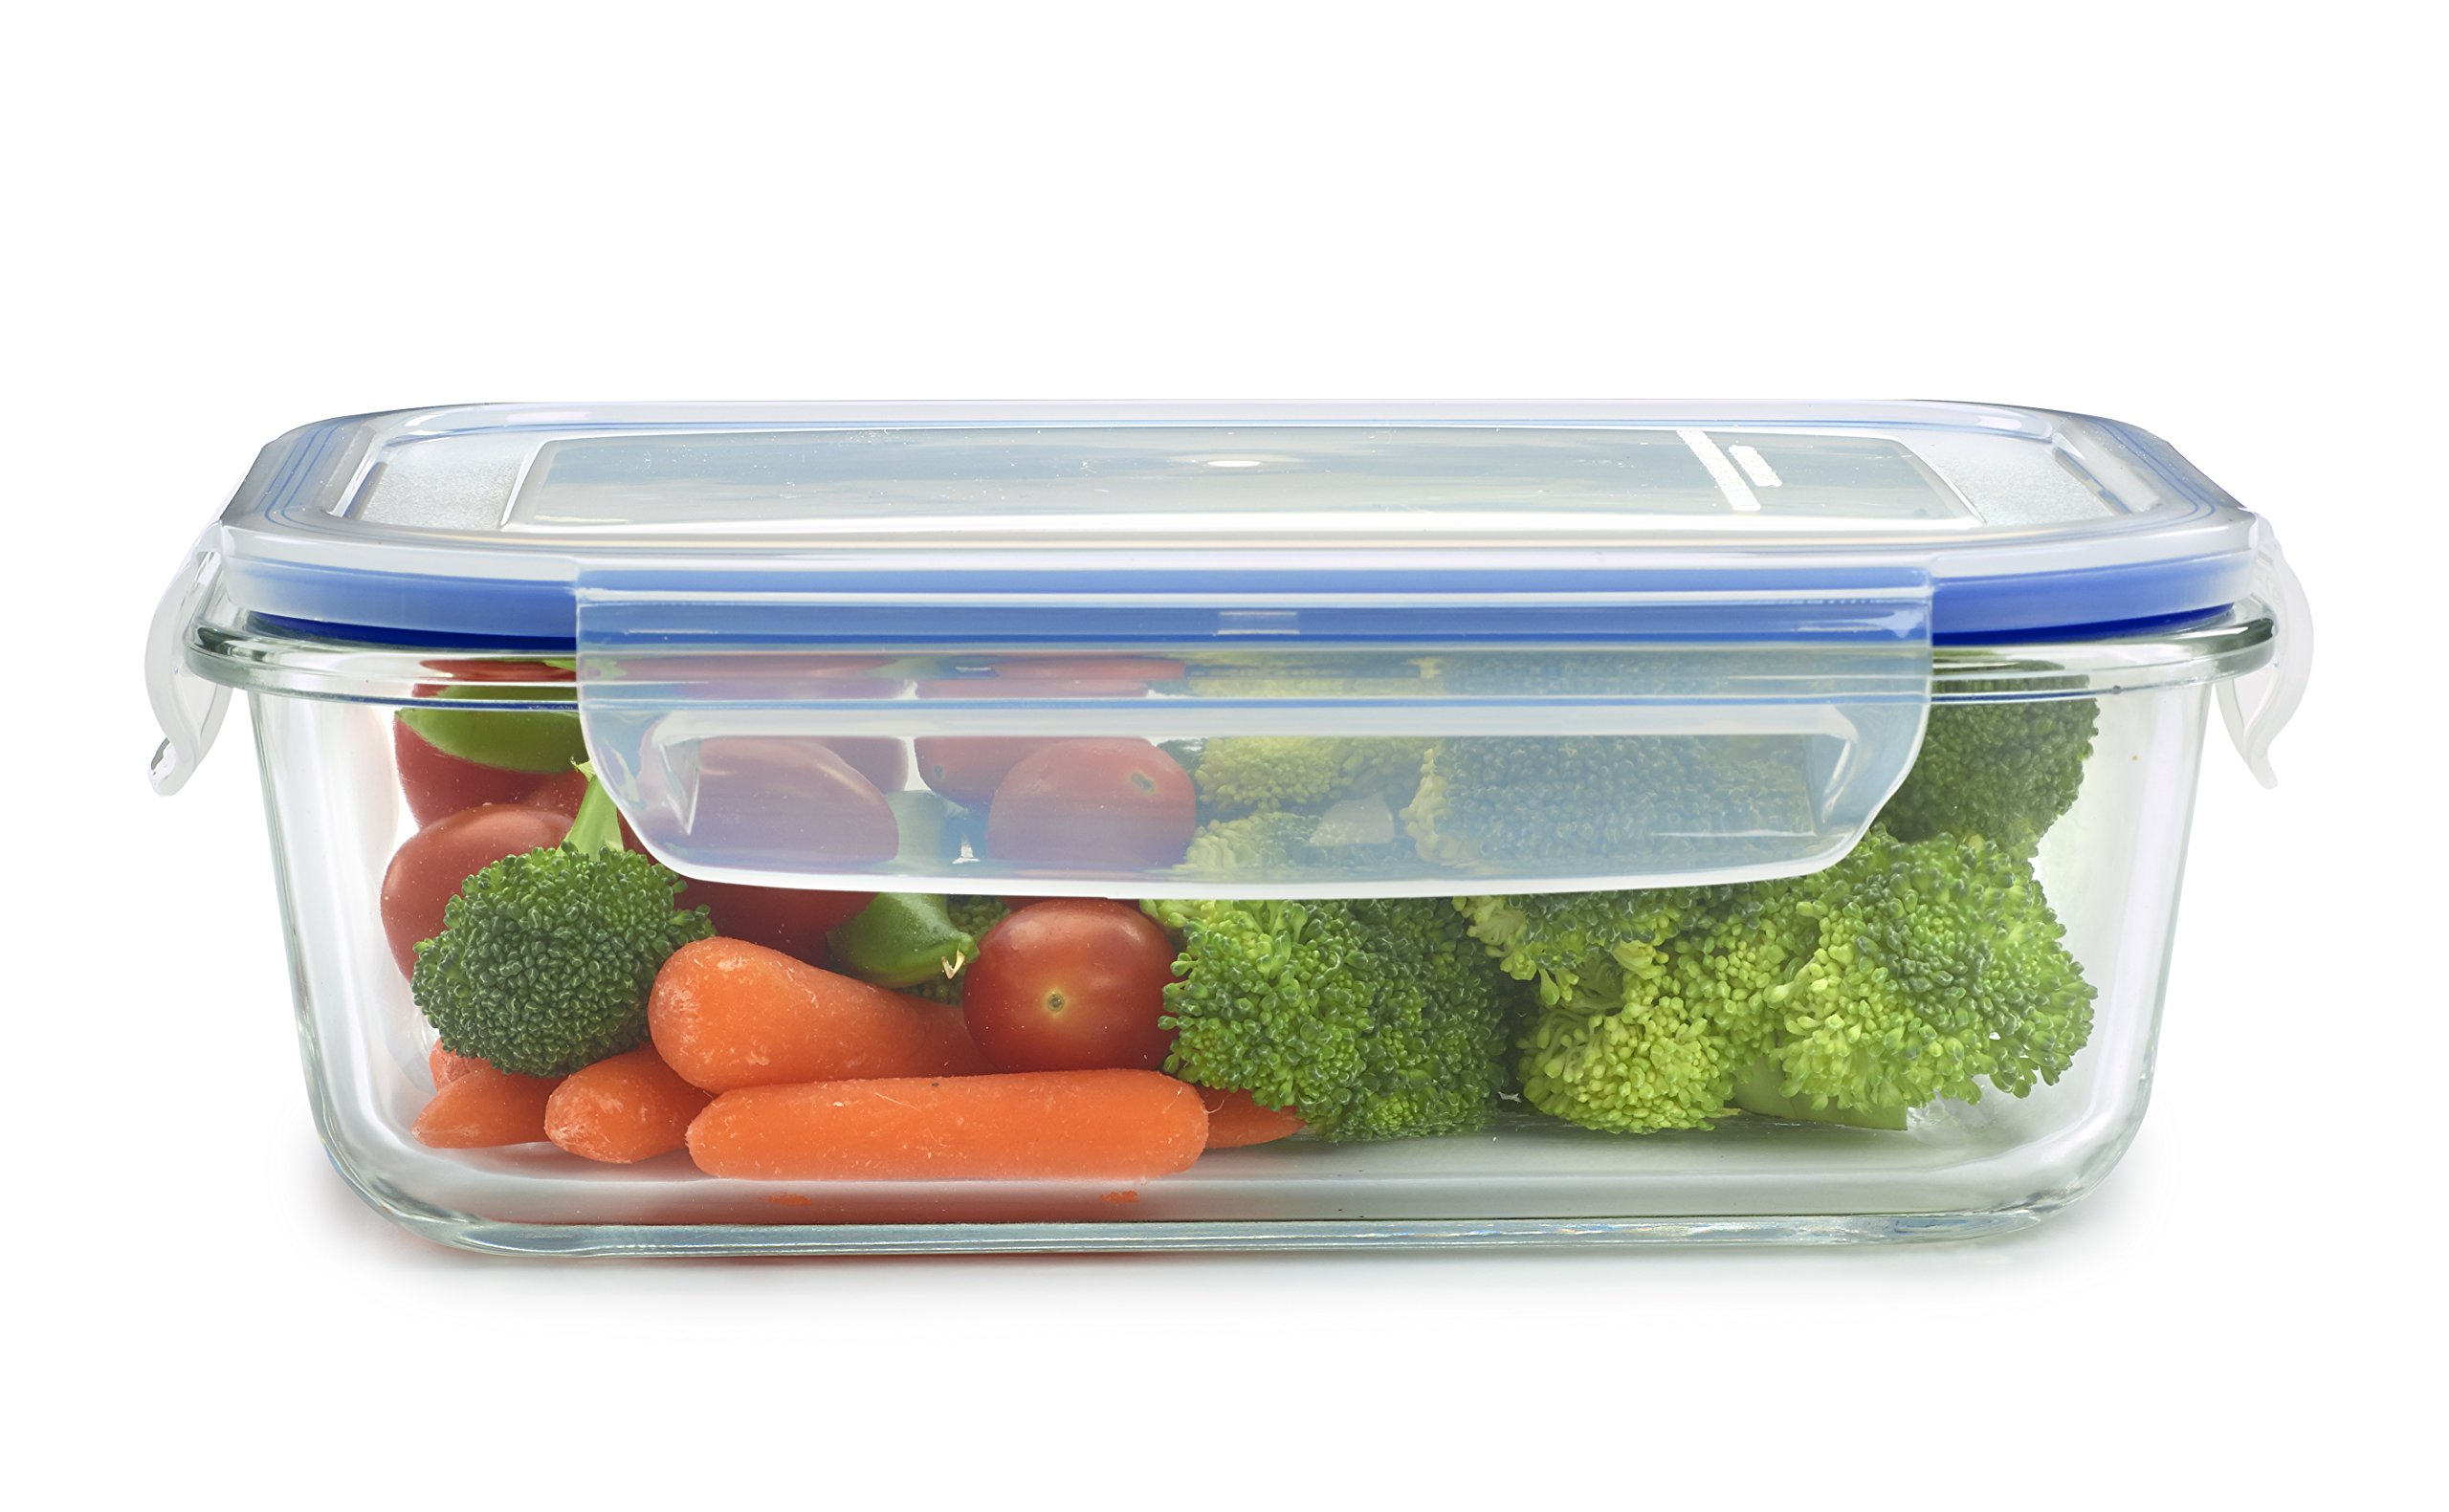 18 Piece Glass Food Storage Container Set - BPA Free - Use for Home, Kitchen and Restaurant - Snap On Lids Keep Food Fresh with Airtight Seal Safe for Dishwasher by 1790 (Image #3)